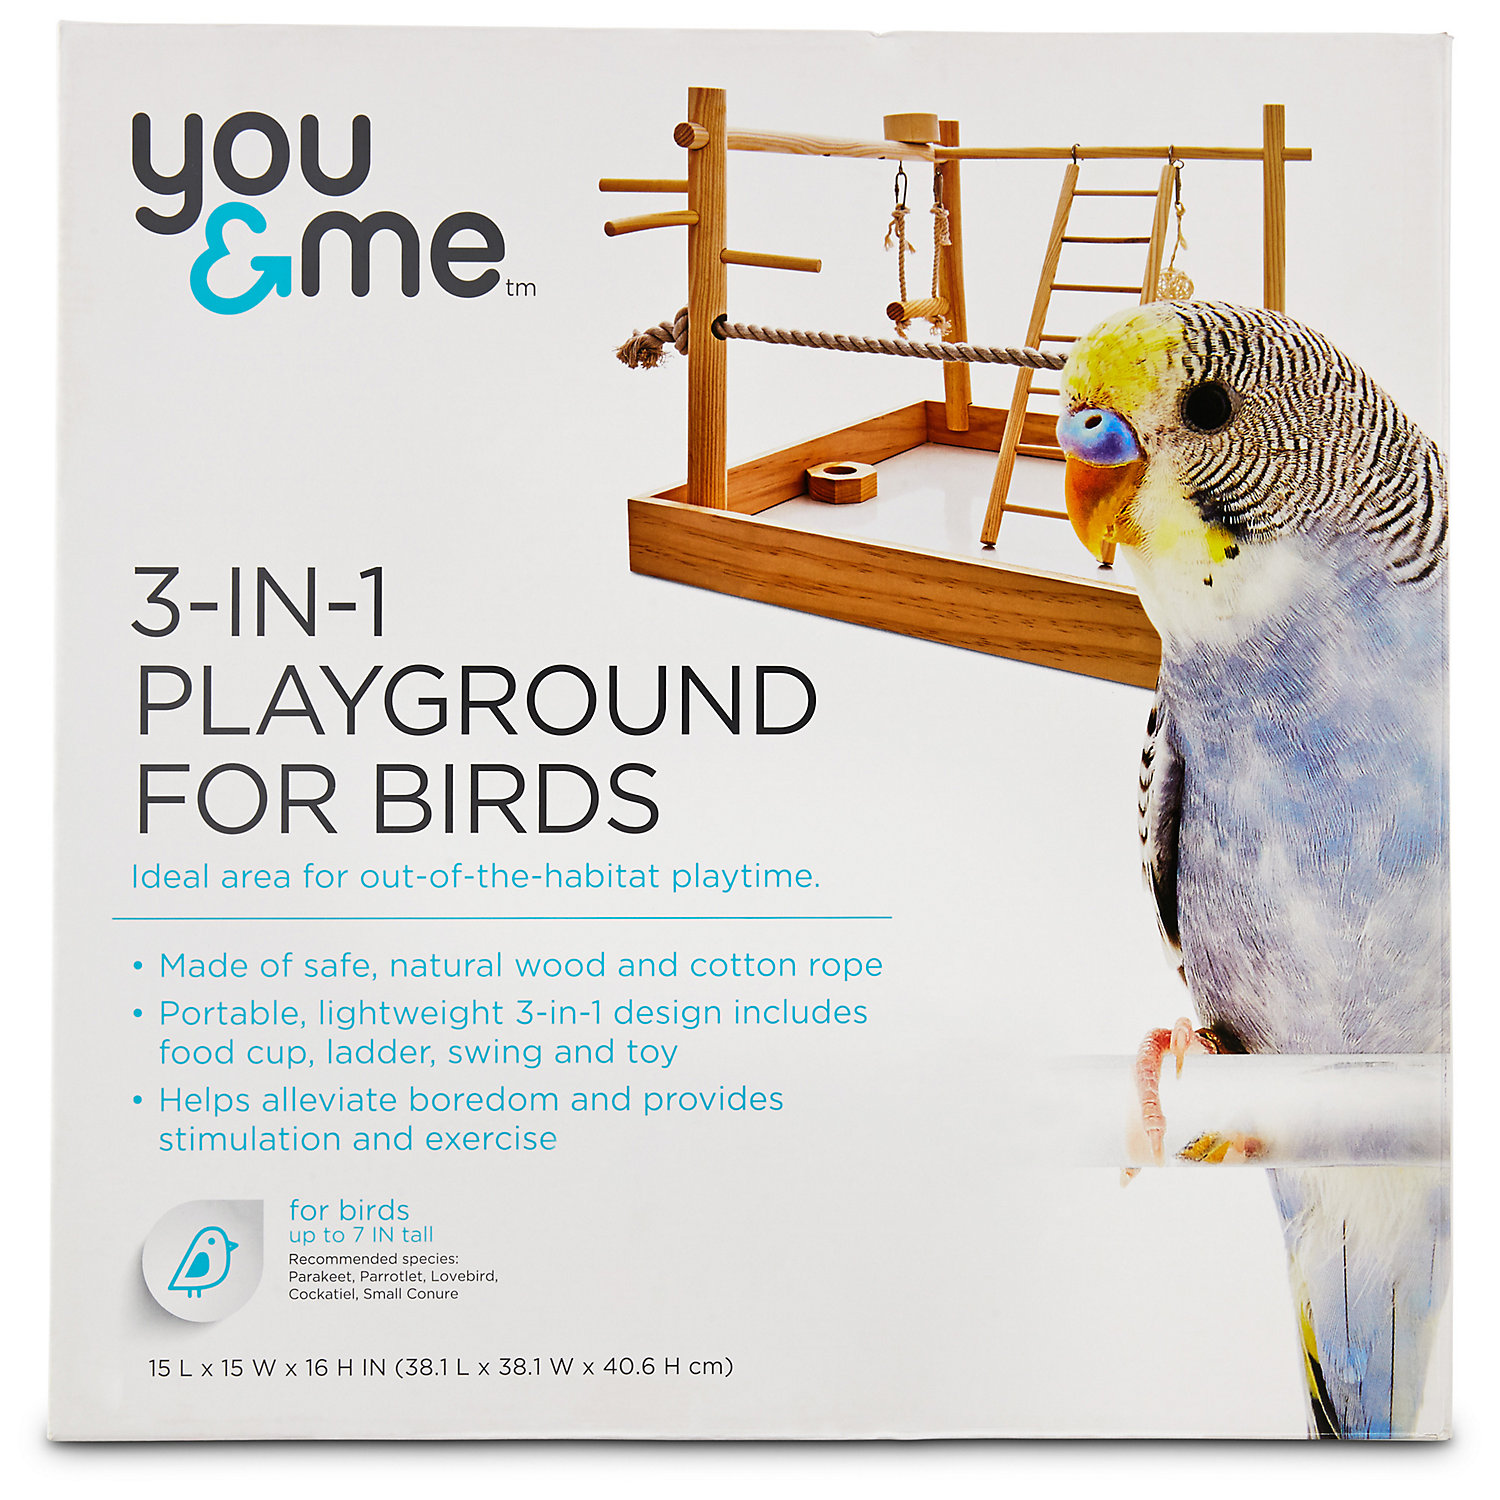 You Me 3 In 1 Playground For Birds 15 L X 15 W X 16 H